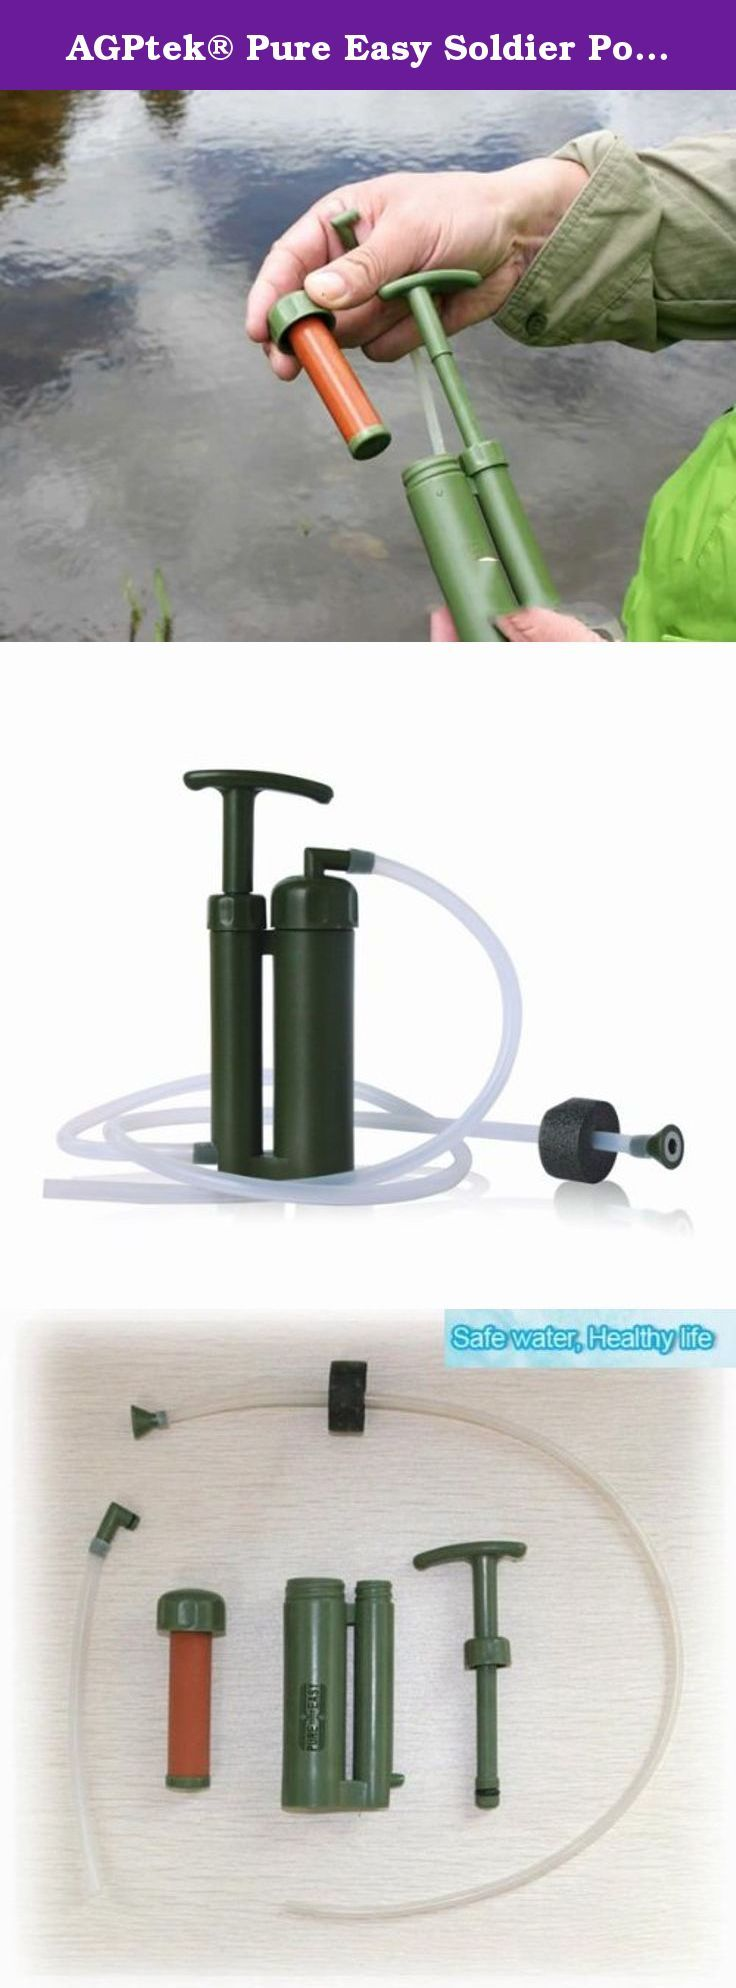 AGPtek® Pure Easy Soldier Portable Mini Water Filter Purifier For Safe Water and Healthy Life (0.1 micron ceramic). This fliter could truns turbid water from rain, lake, river and other natural water into direct drinkable water immediately as it could remove the bacteria in water entirely.. A perfect choice for soldiers, Hiking, Fishing, Hunting, Outdoor Work, Camping, Survival, Military, Foreign Travel, exploration Insurance, climbing, refugee and rescuer in Emergency or natural…